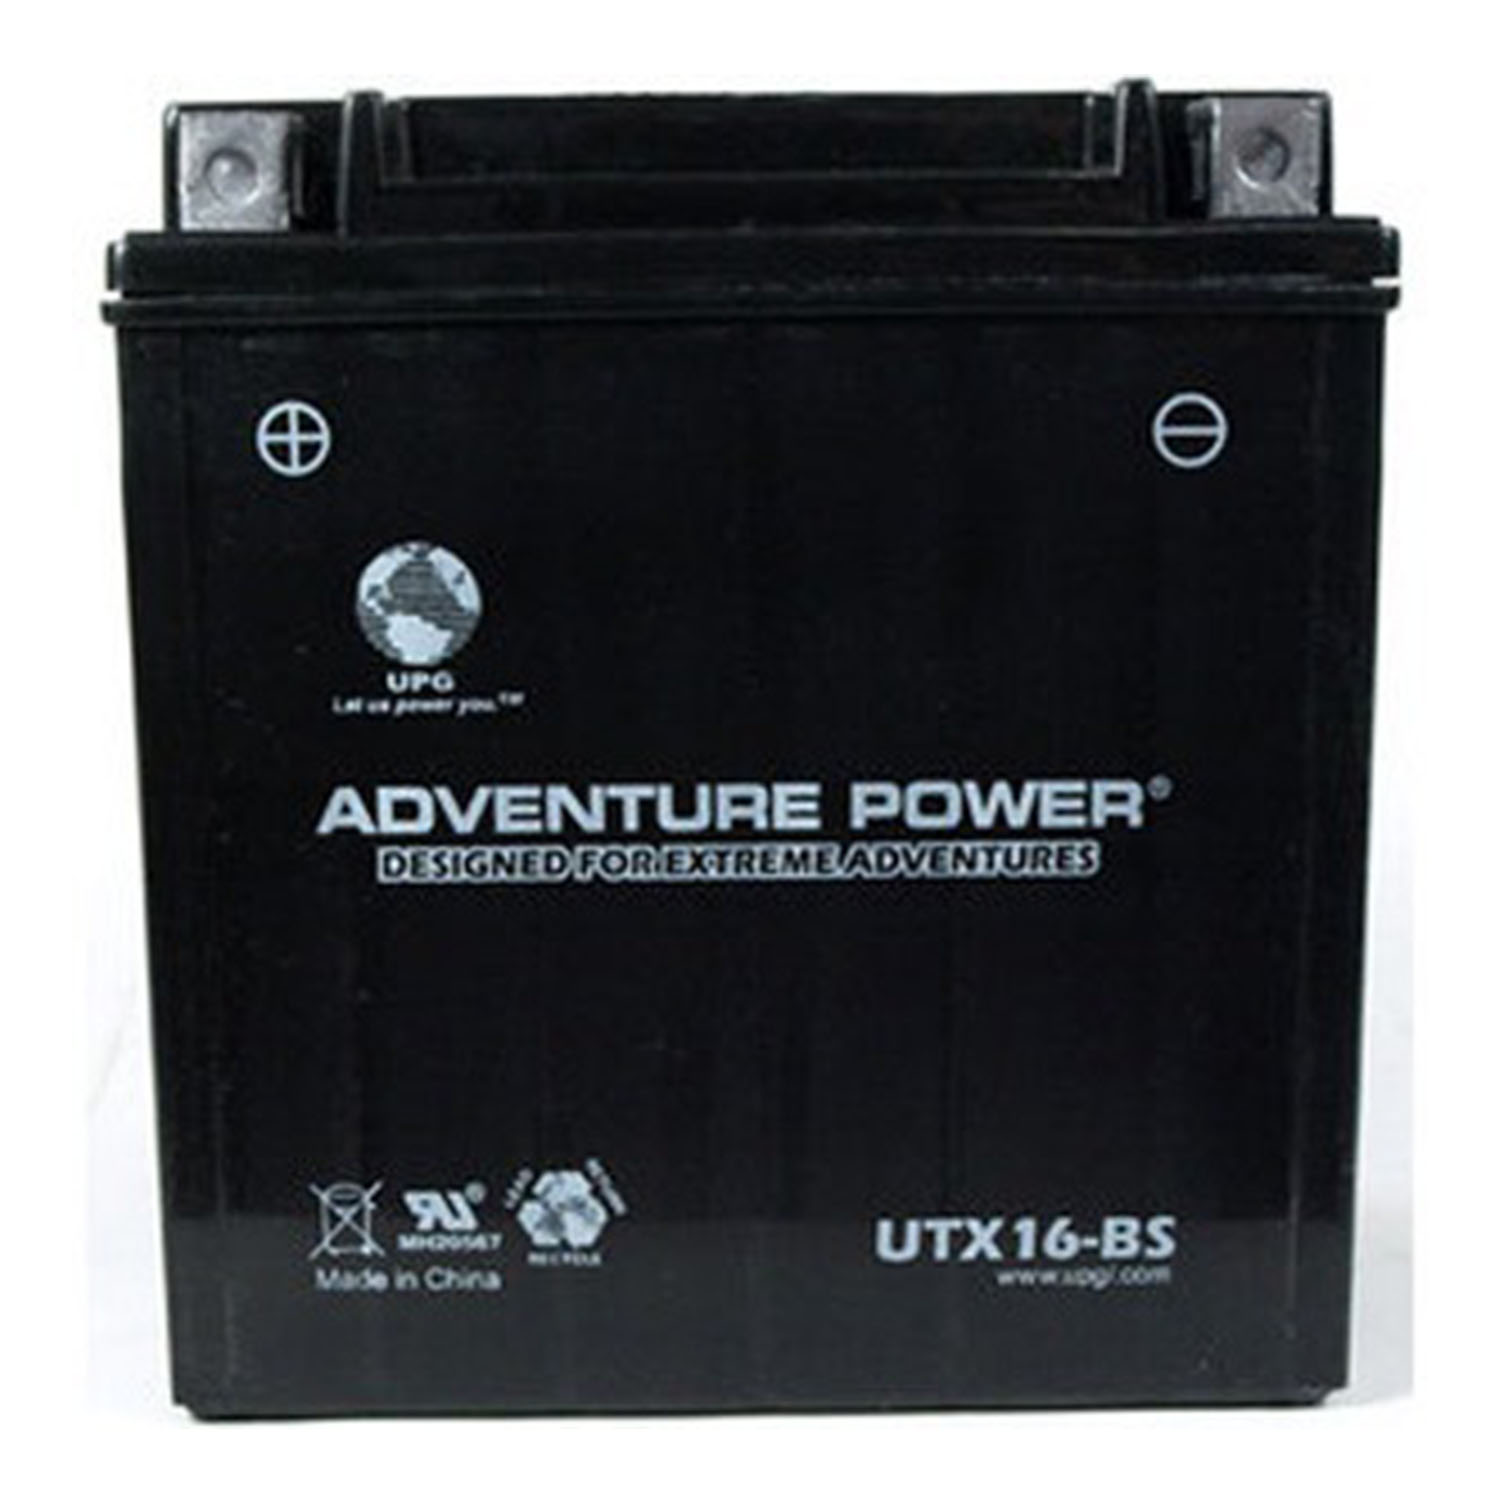 UTX16-BS 12V 14AH Battery for Suzuki 1400 VS1400 S83 1987-2009